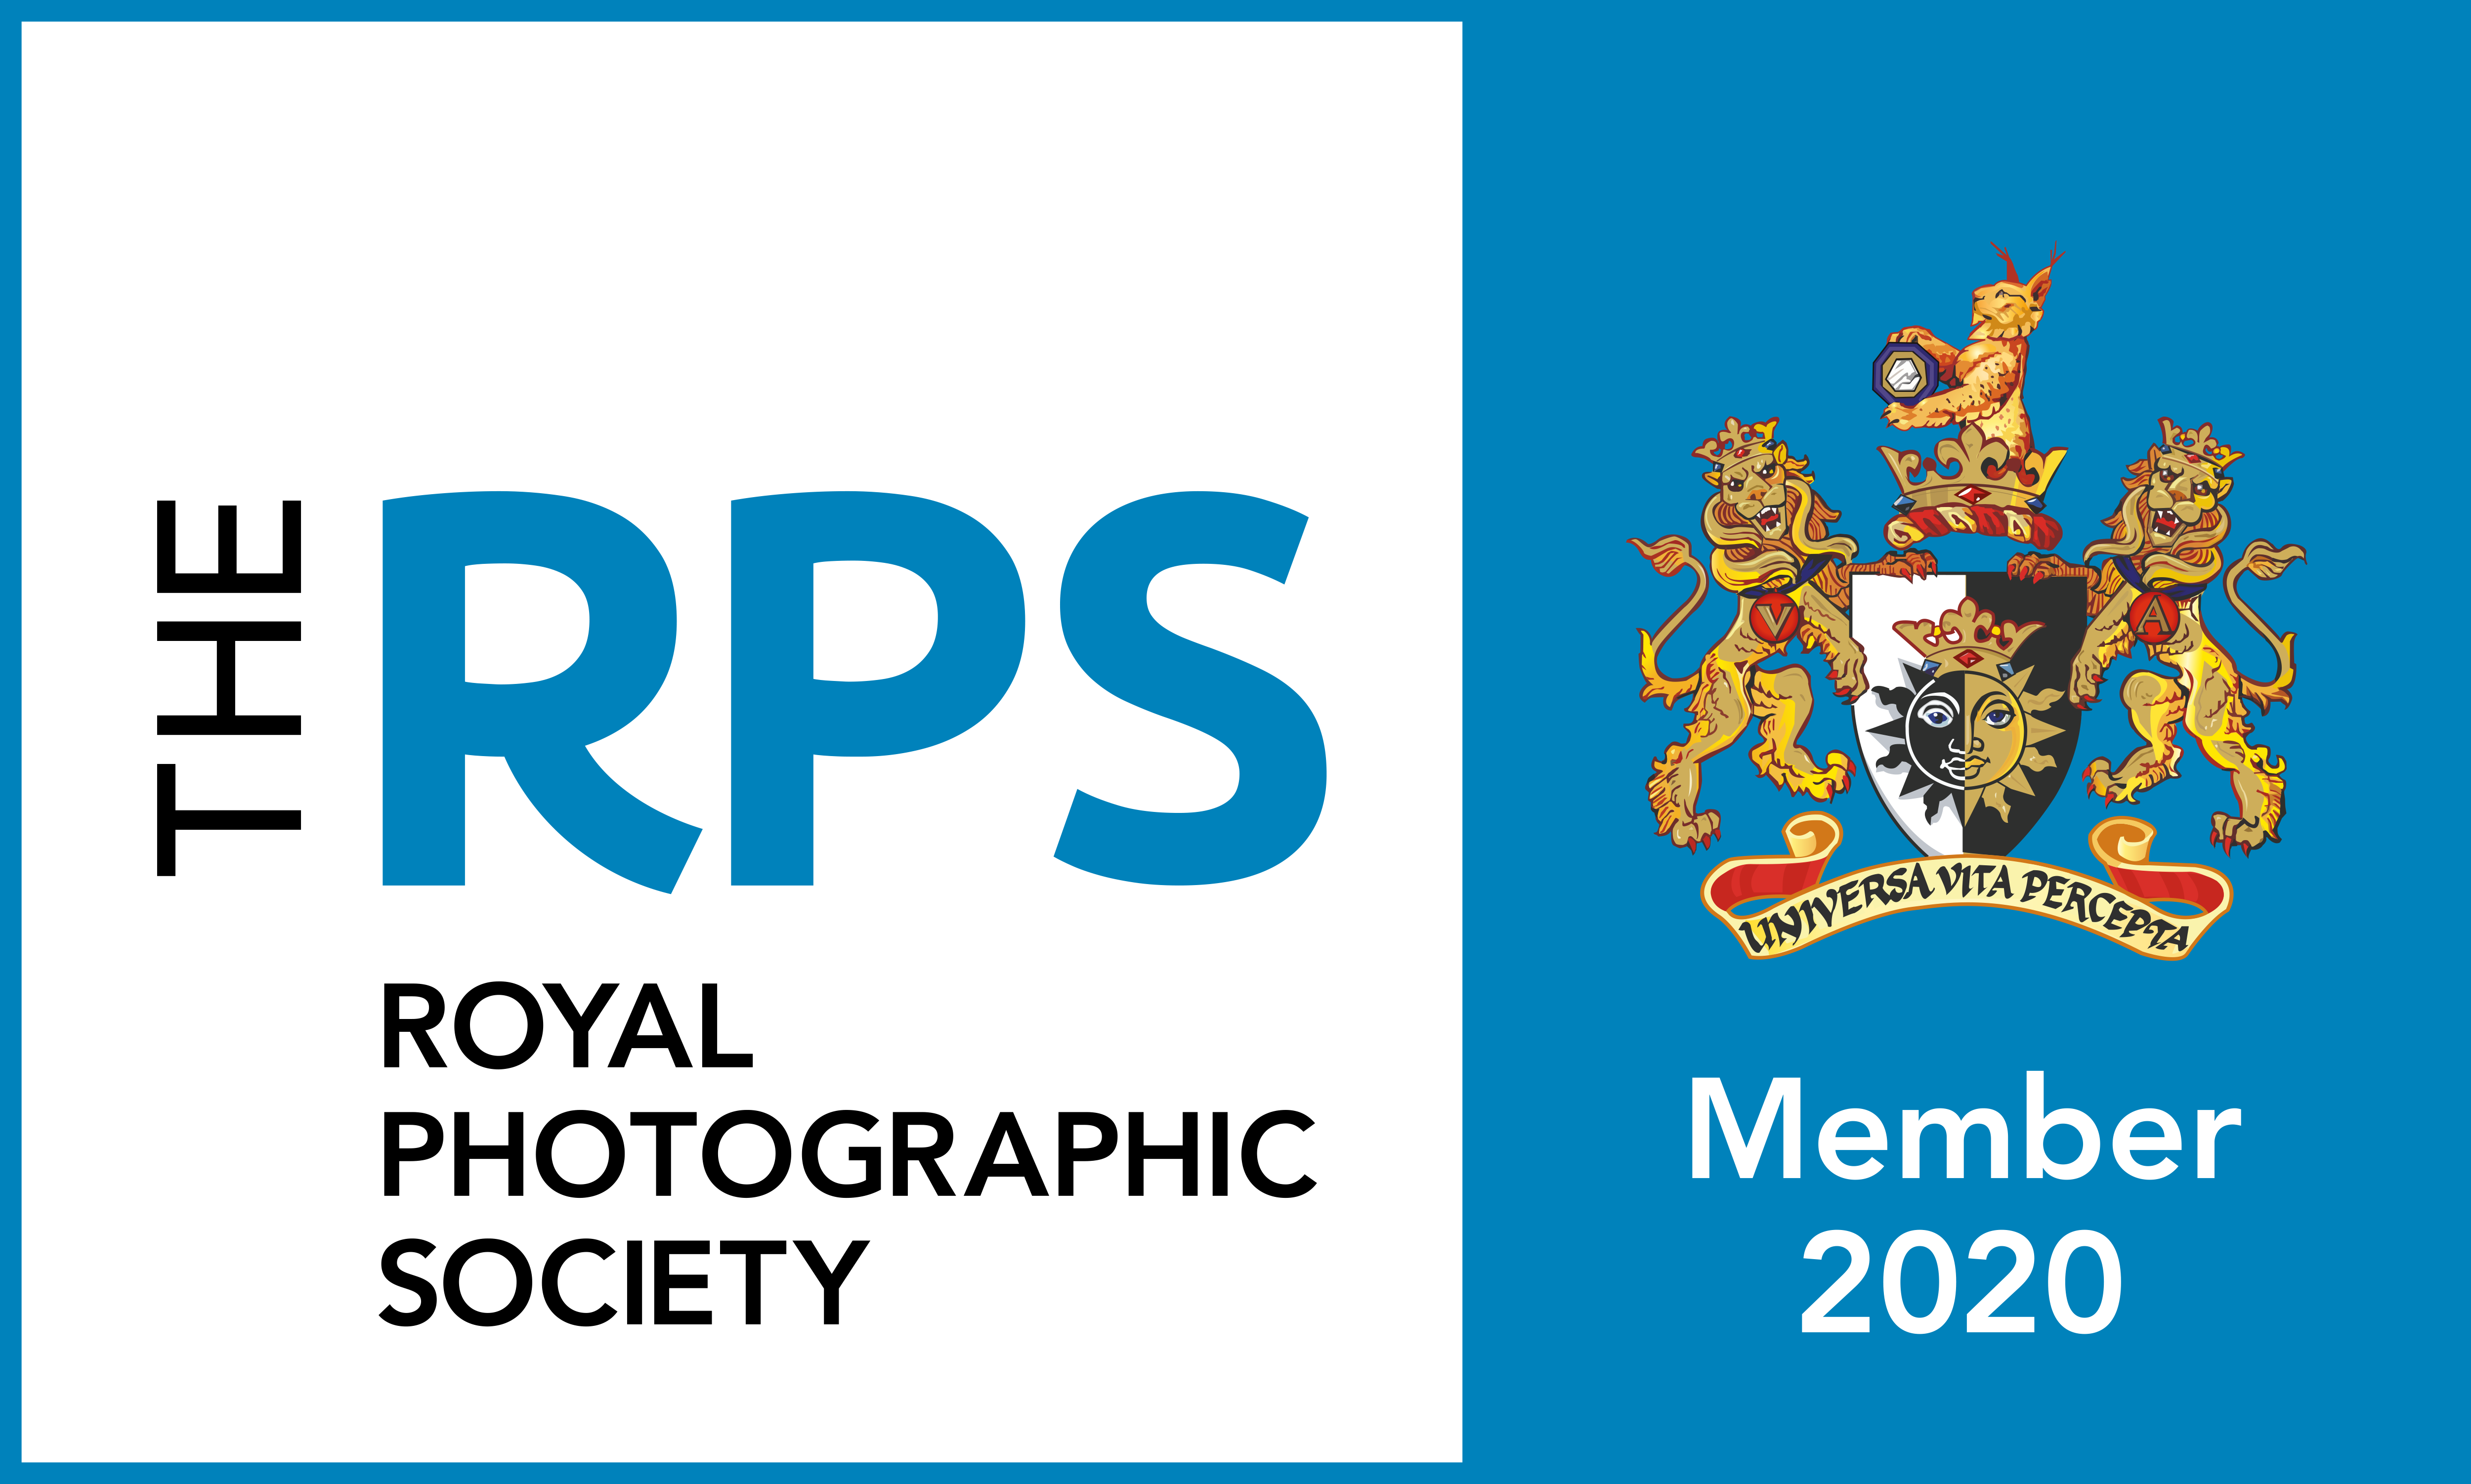 Member, Royal Photographic Society